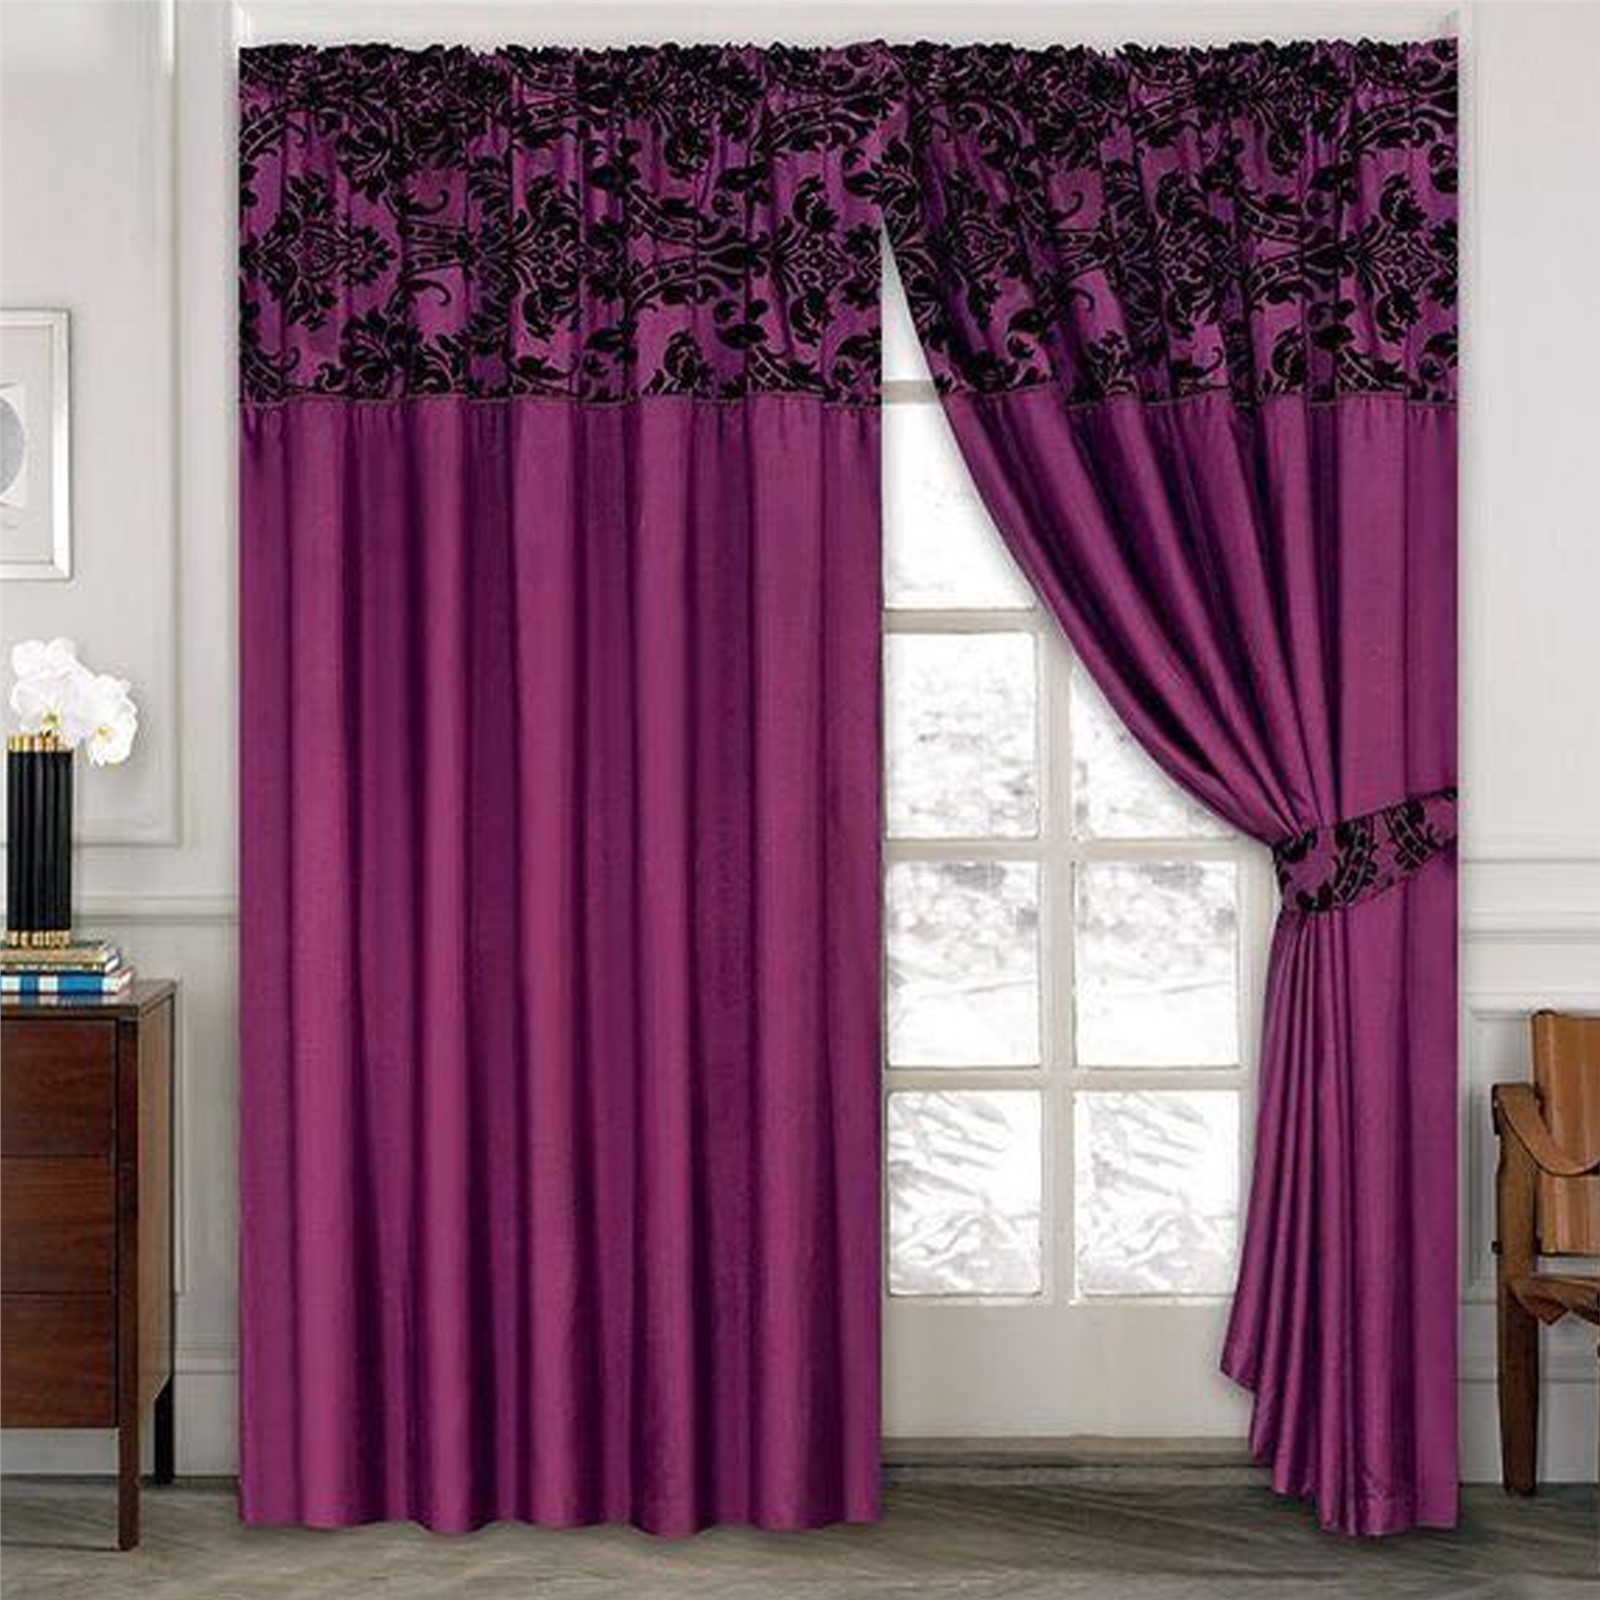 garden window treatments hardware curtains drapes